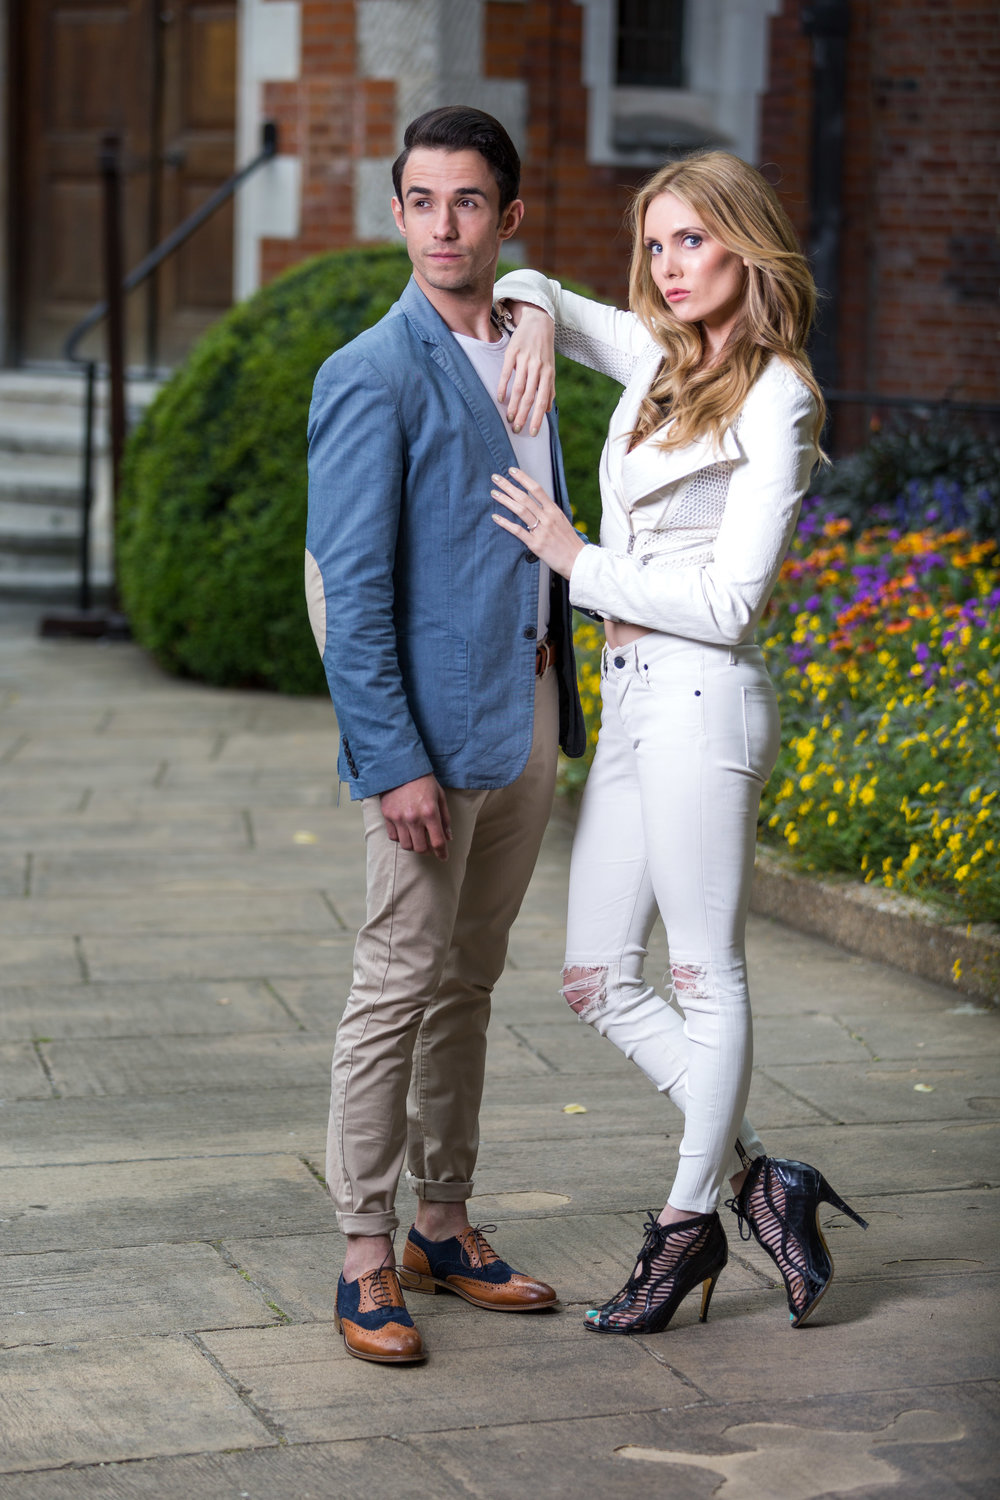 Engagement Photoshoot at Grays Inn Banqueting, The Honourable Society of Gray's Inn, London